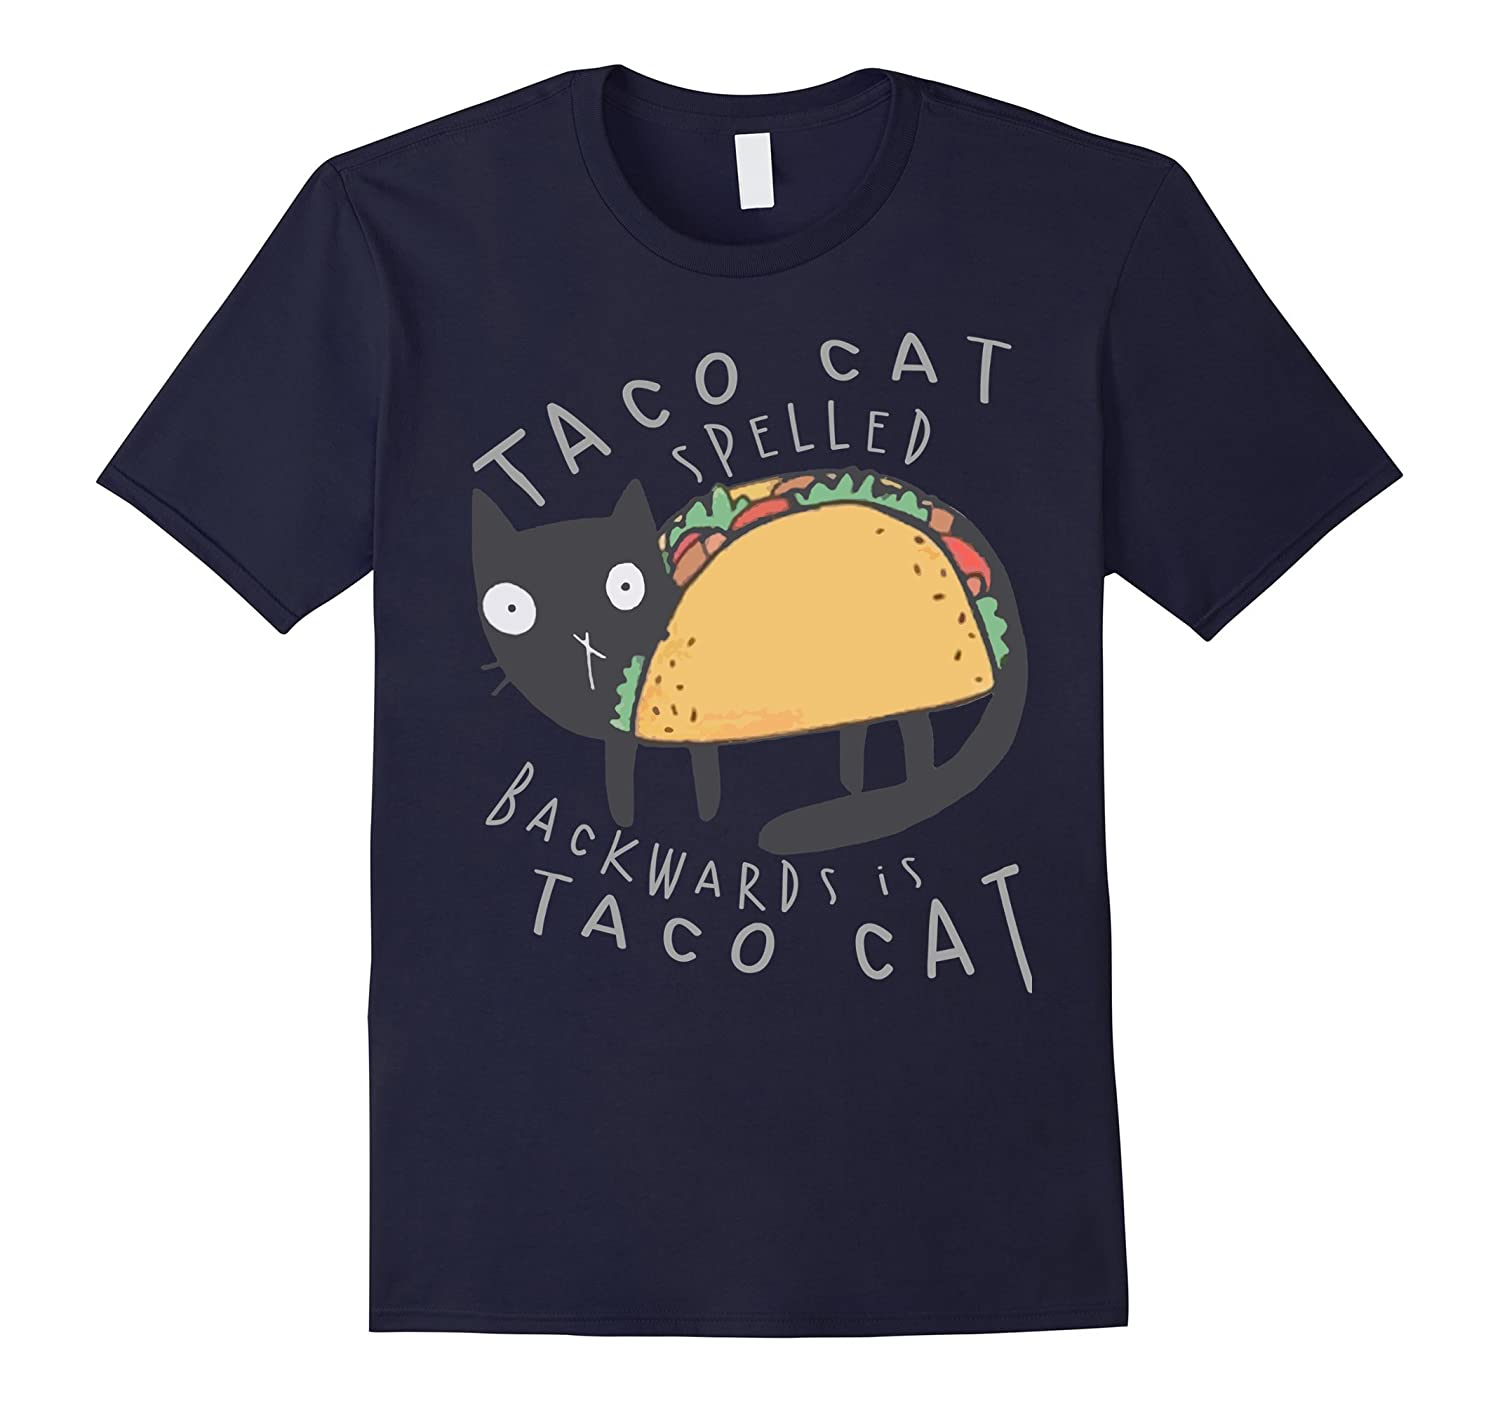 Taco Cat TShirt, Taco Cat Spelled Backward Is Taco Cat Shirt-BN